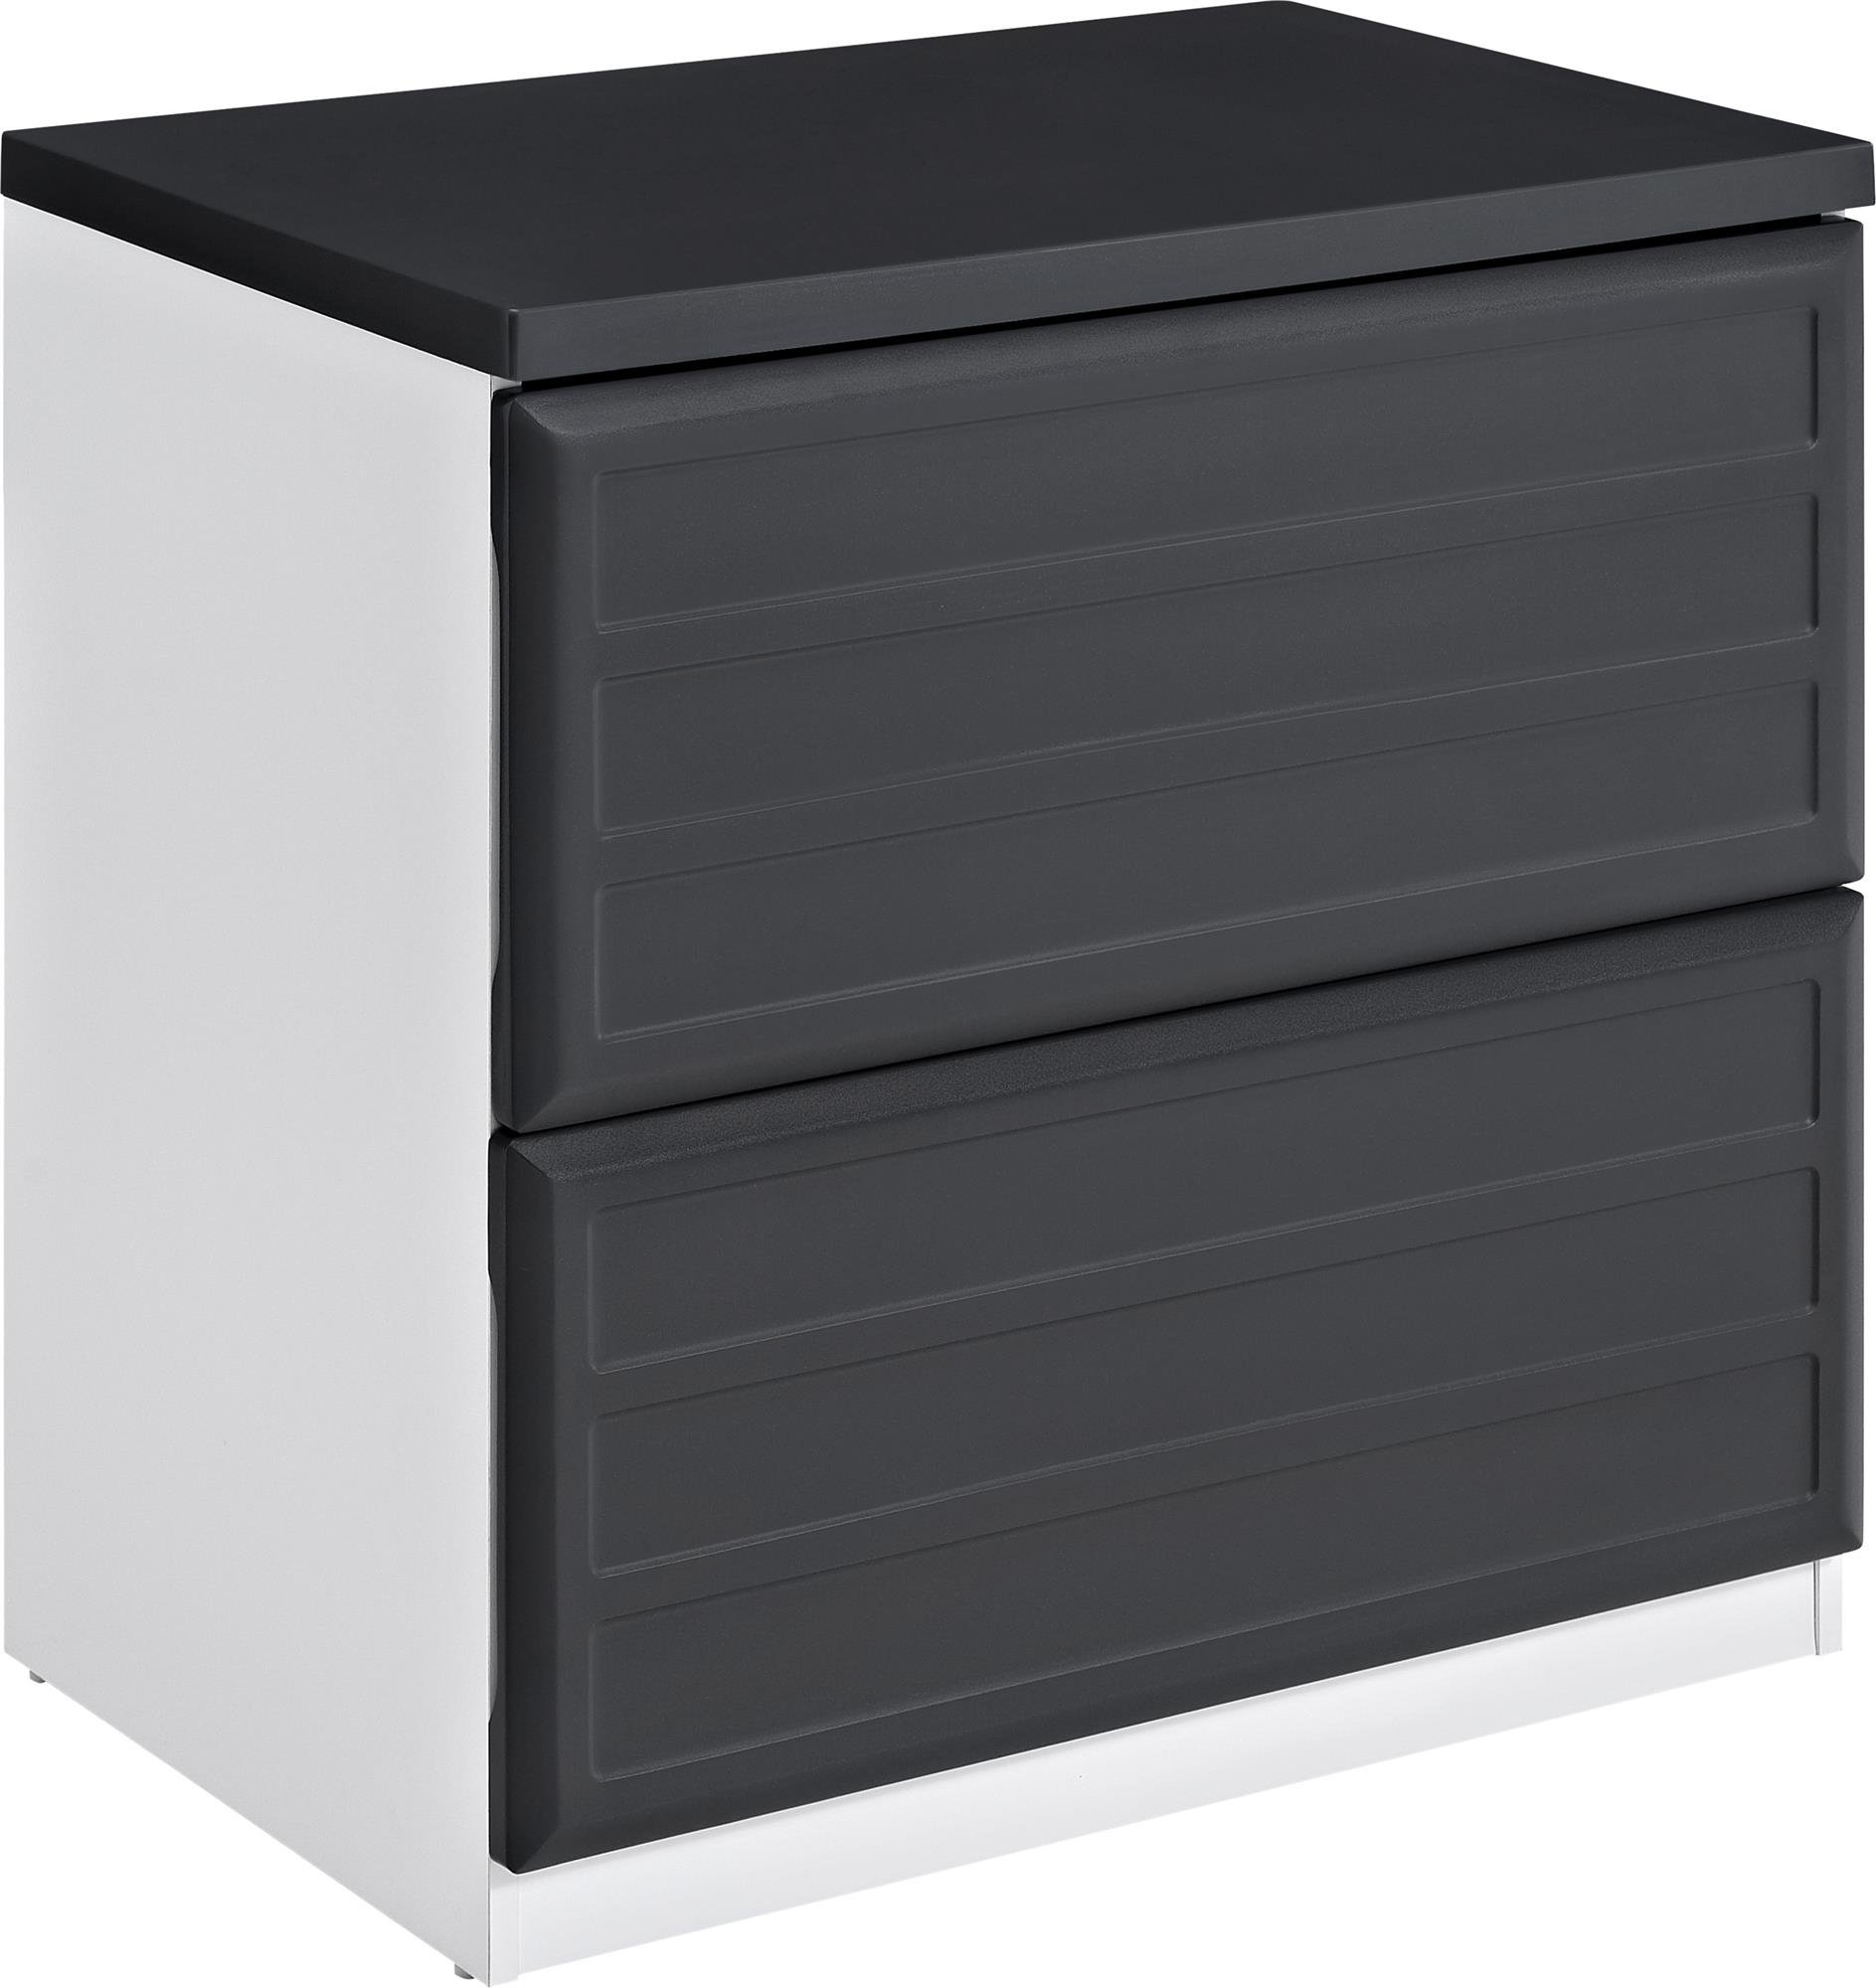 Ameriwood Home Pursuit Lateral File Cabinet, Gray